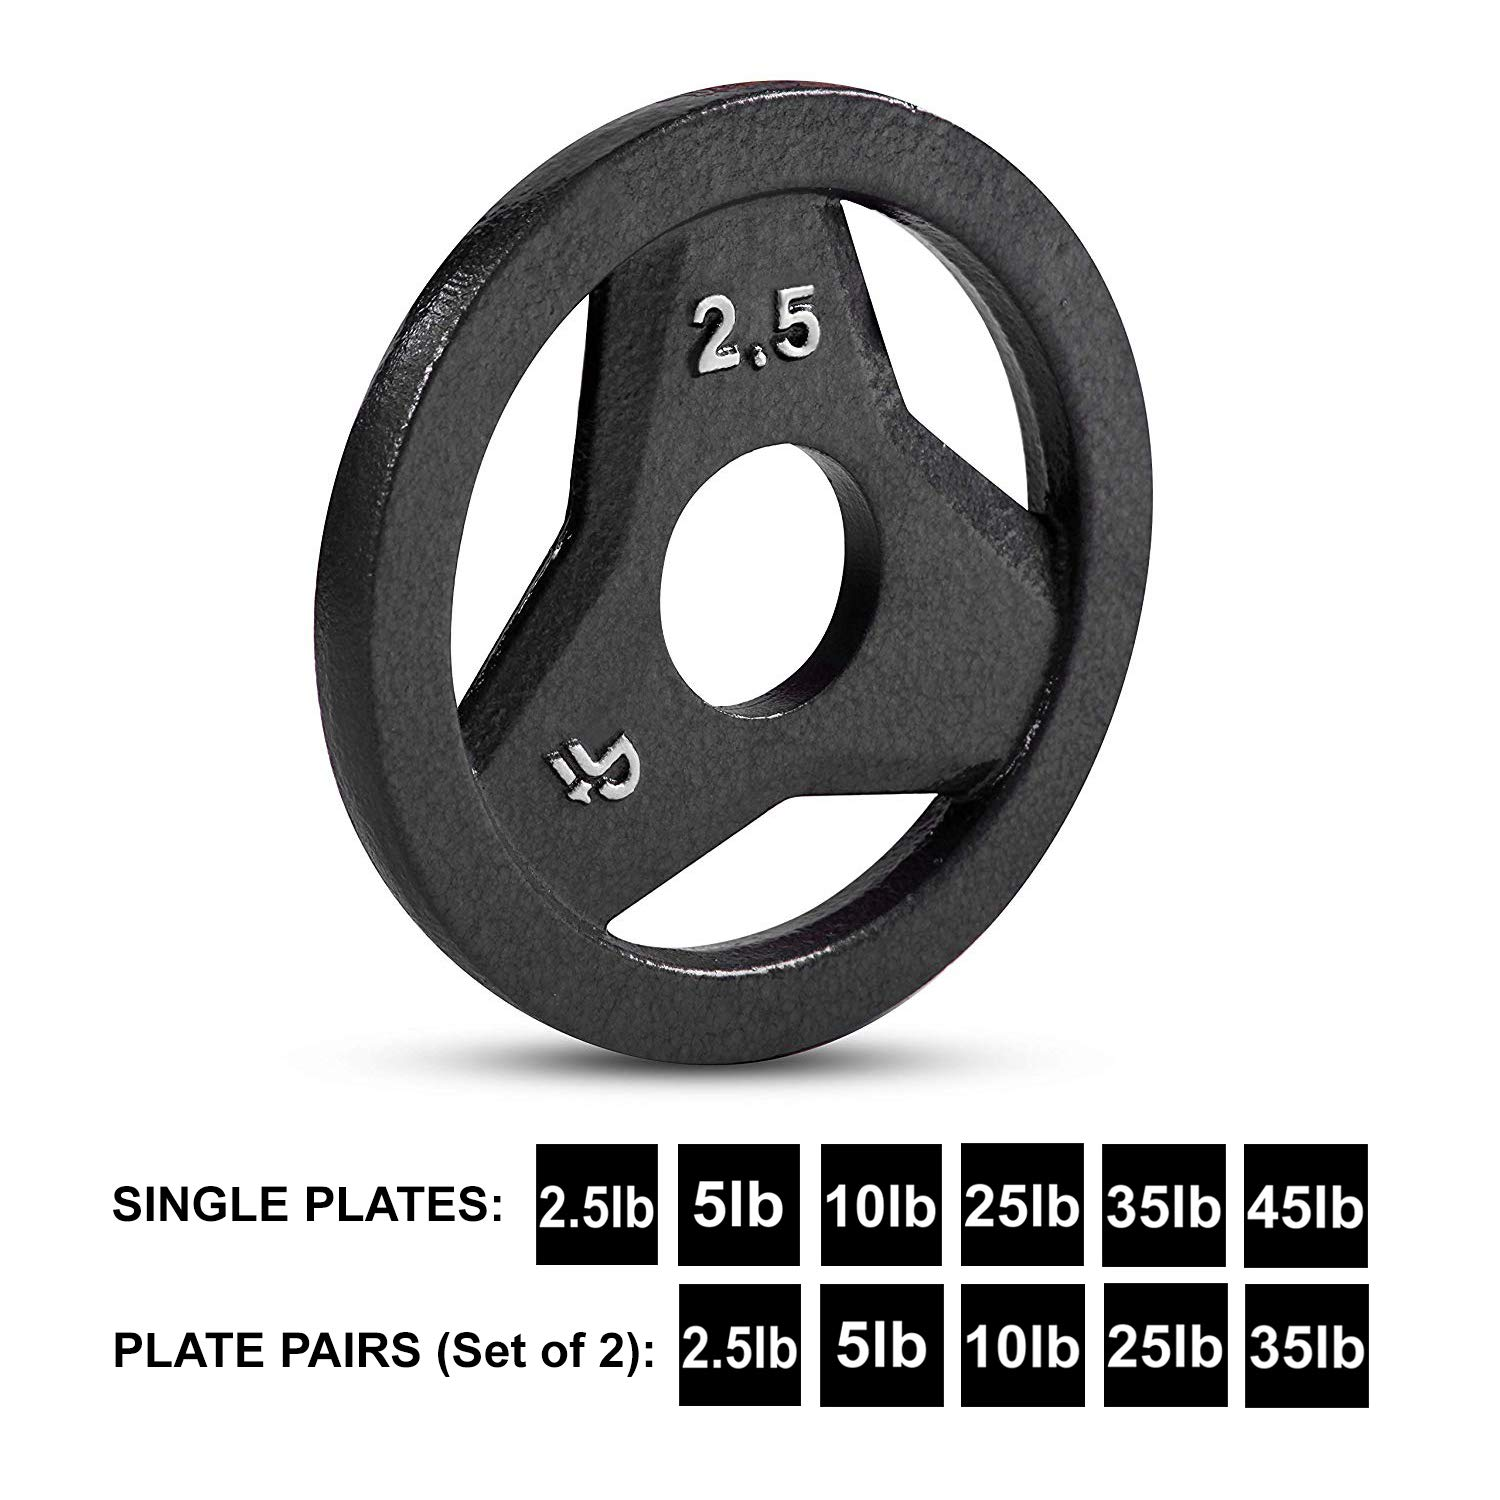 Day 1 Fitness Cast Iron Olympic 2-Inch Grip Plate for Barbell, 2.5 Pound Single Plate Iron Grip Plates for Weightlifting, Crossfit - 2'' Weight Plate for Bodybuilding by Day 1 Fitness